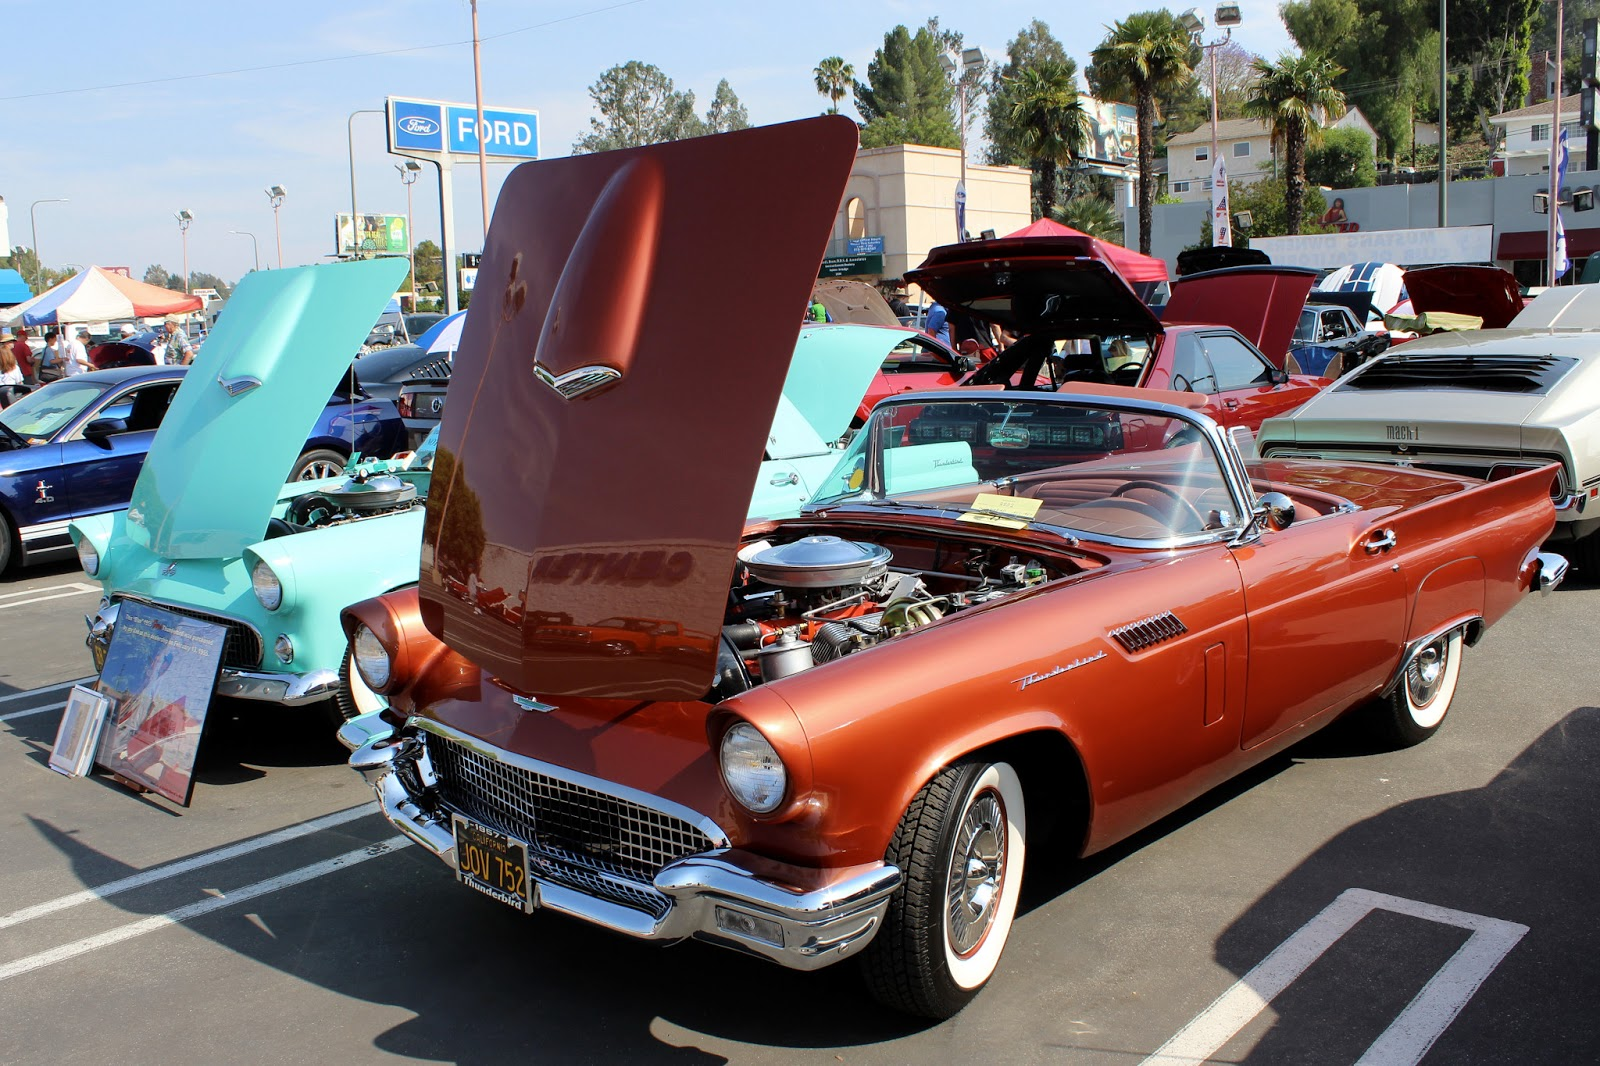 Covering Classic Cars : Vista Ford Mustang Show & Super Car Sunday